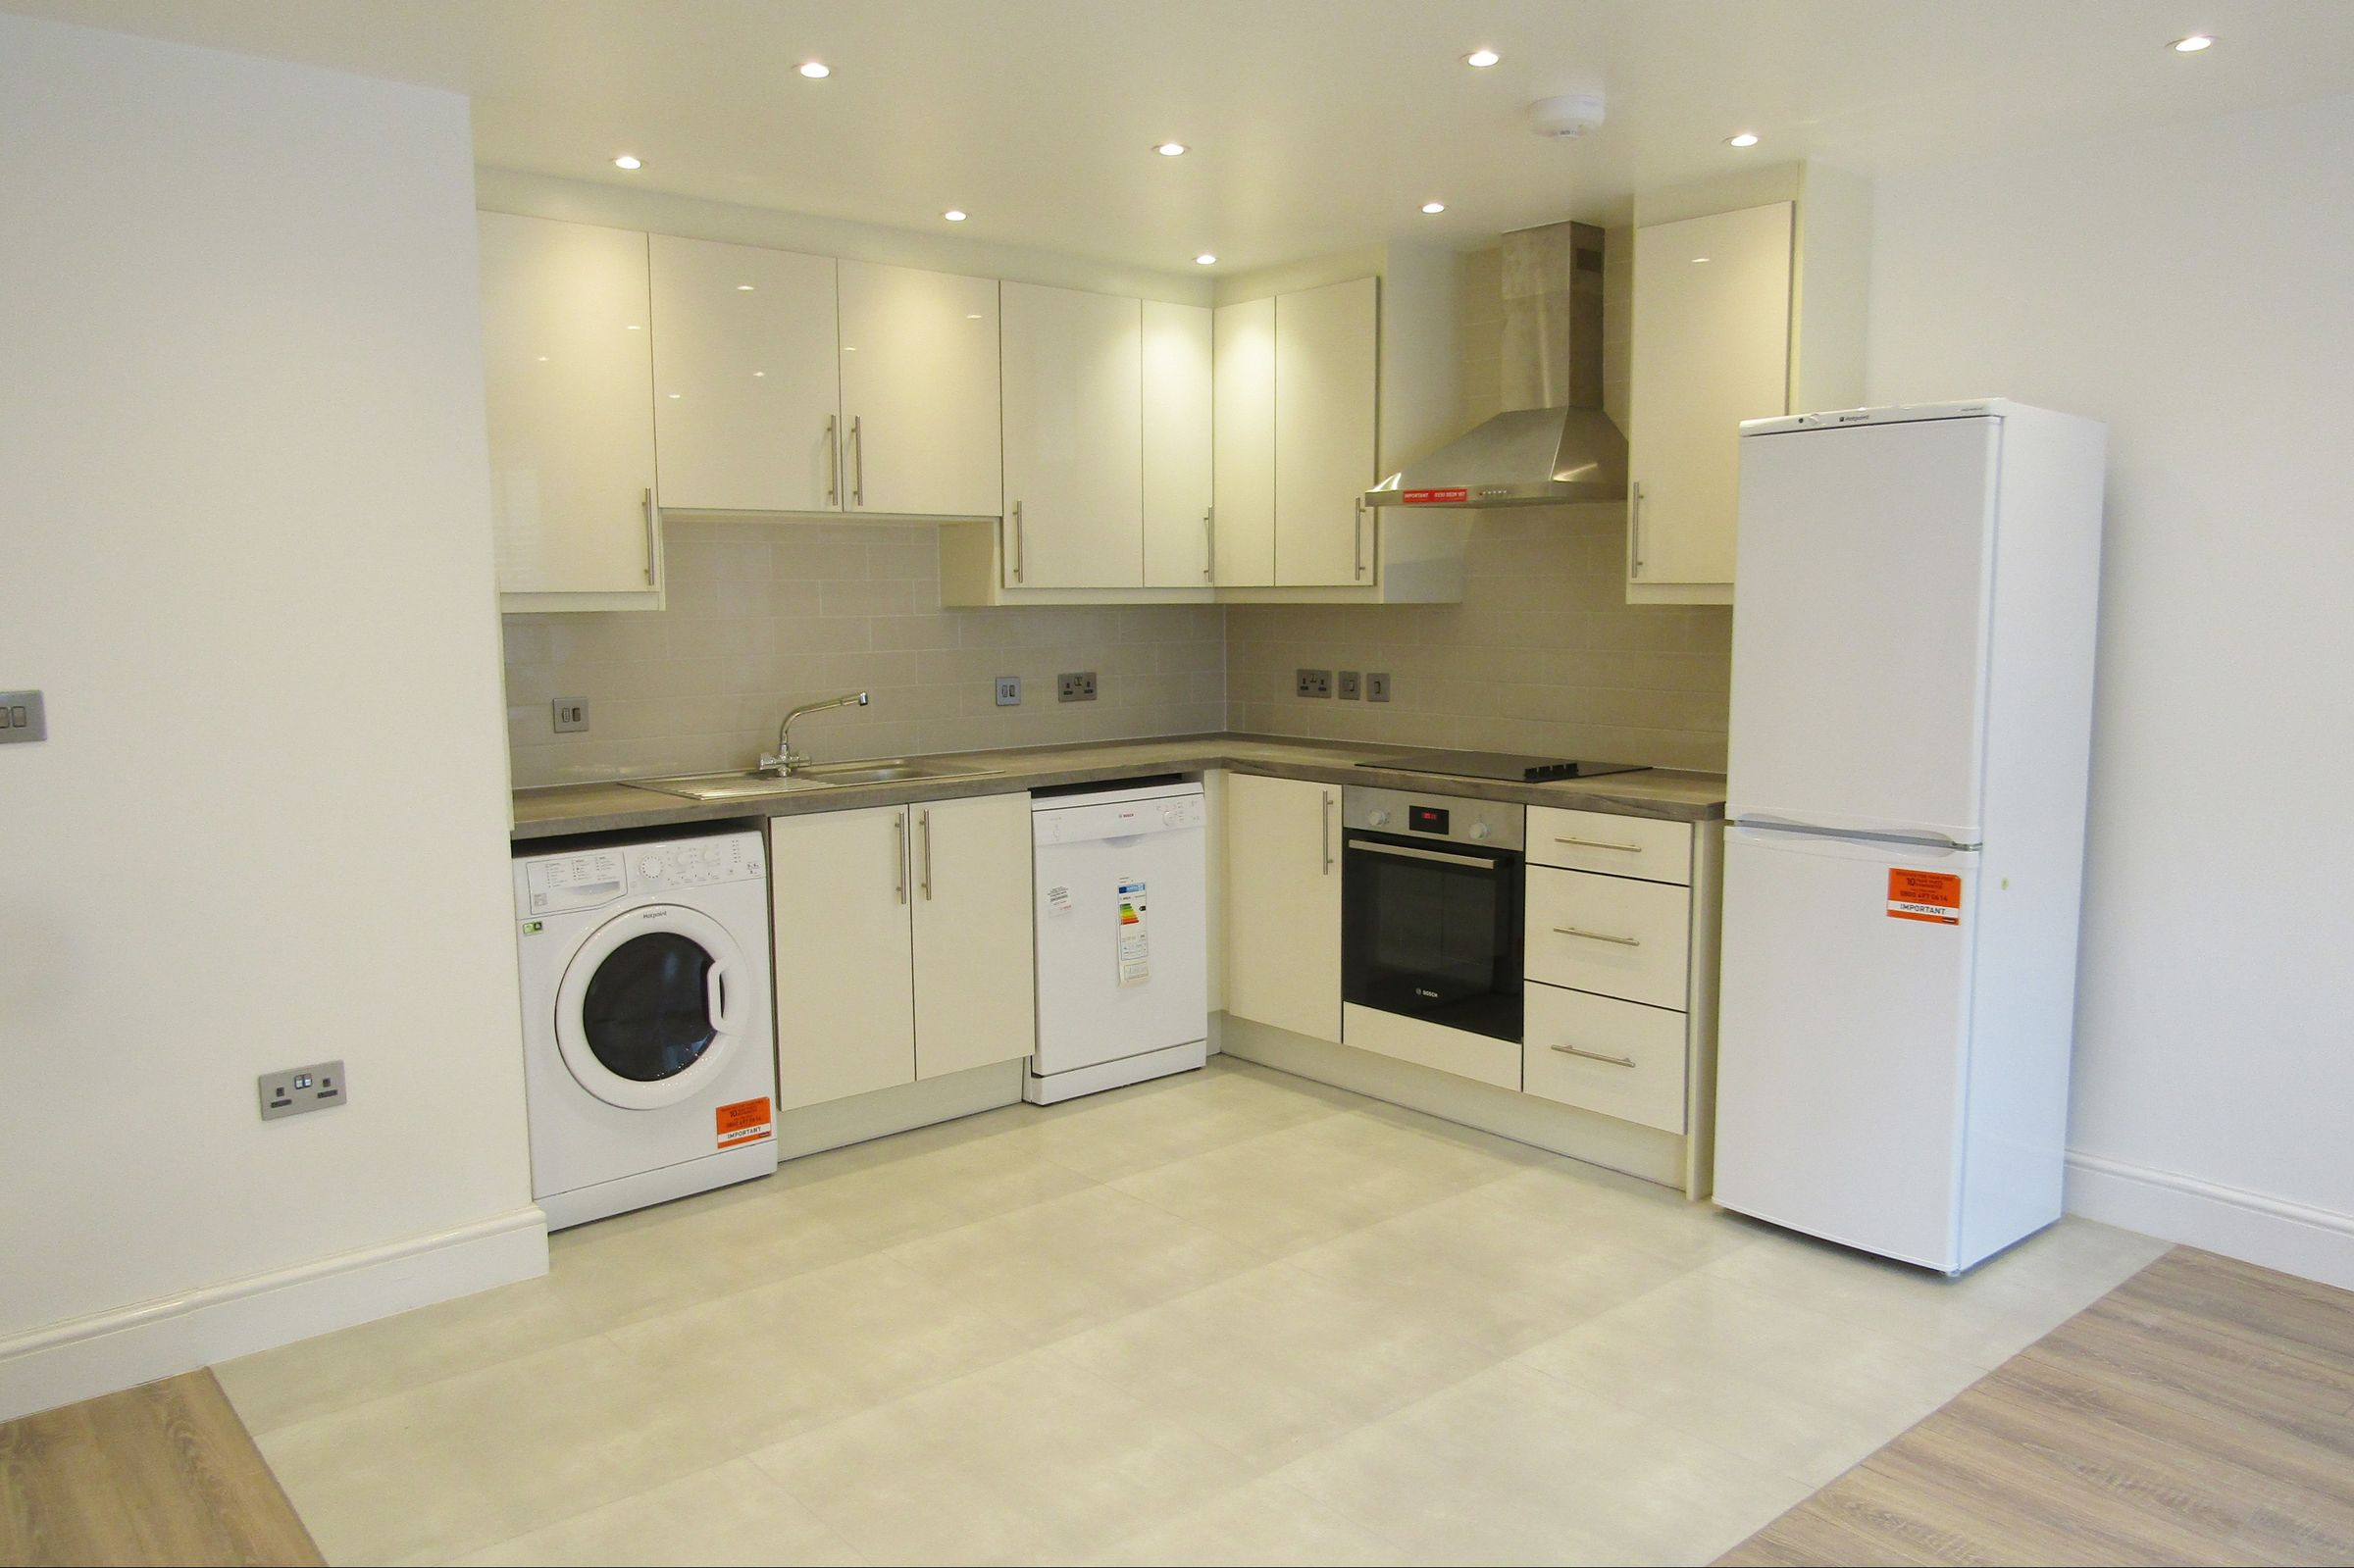 Property photo 1 of 7. Open Plan Living Room/Kitchen